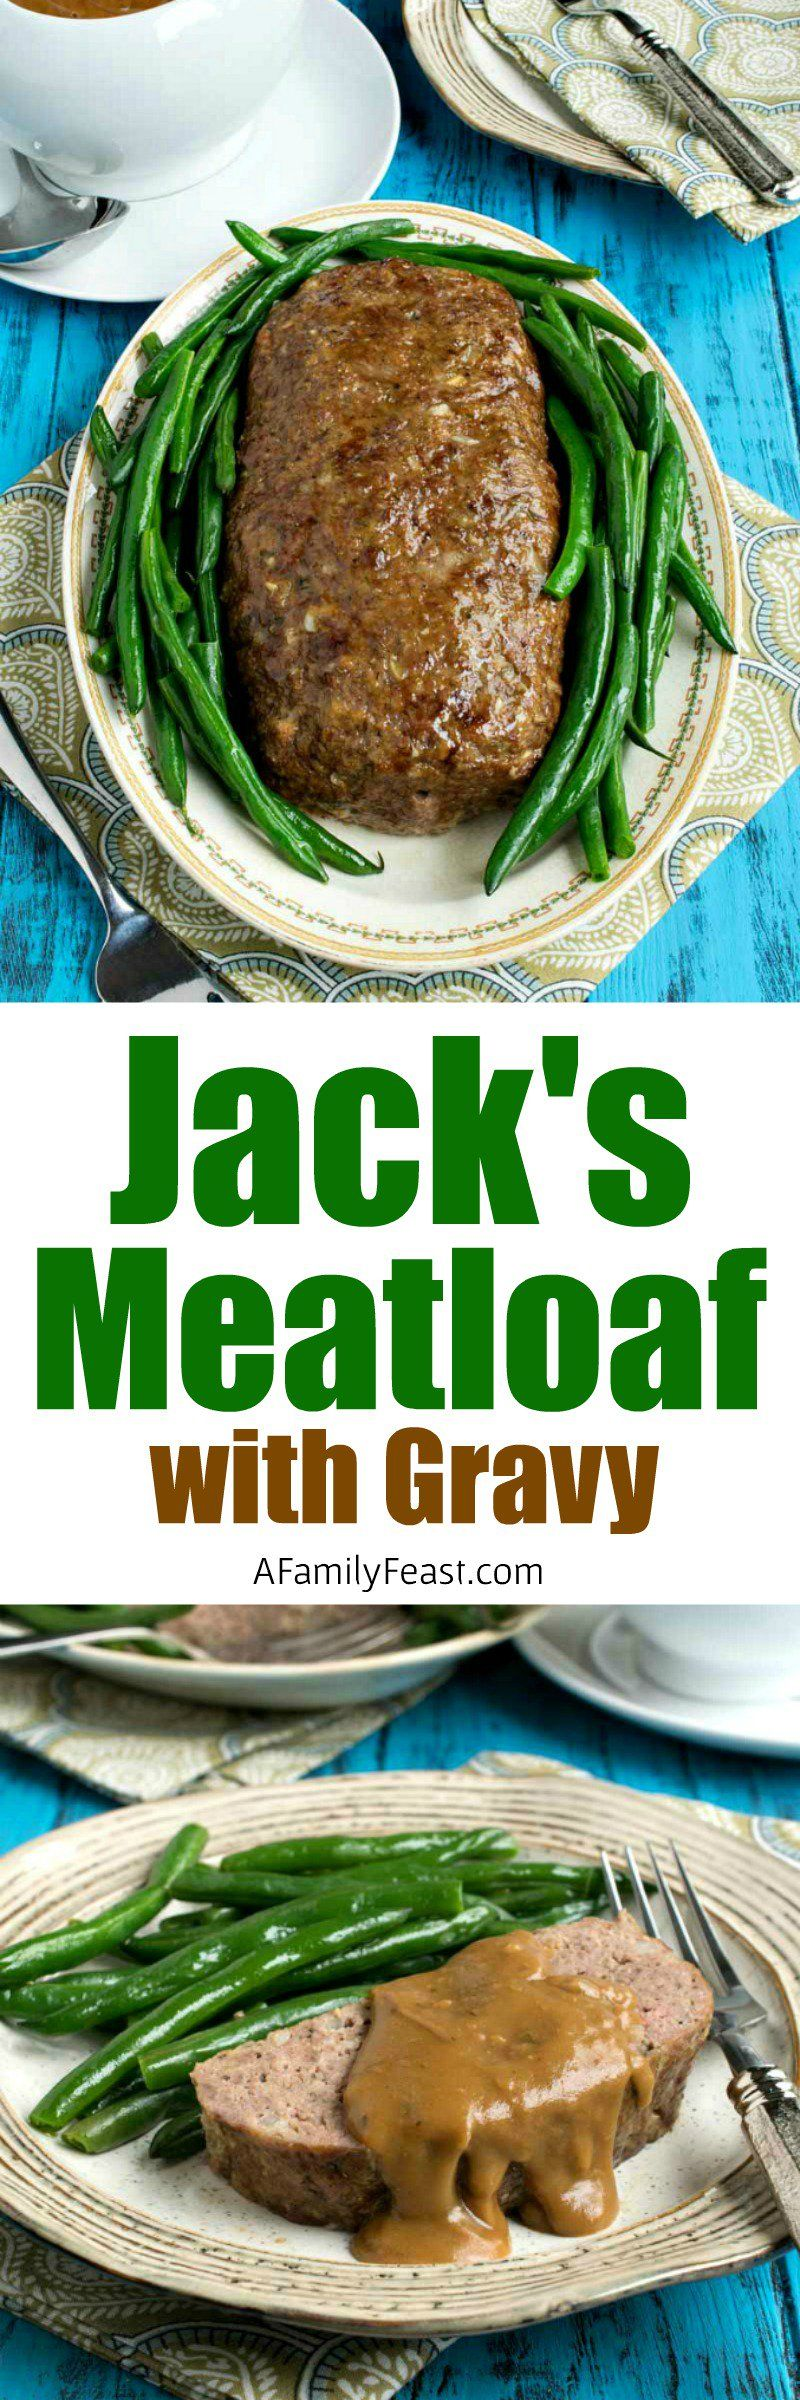 My Husband Jack S Meatloaf With Gravy An Easy Recipe For Moist Delicious Meatloaf With Gravy A Comfort Food Meatloaf With Gravy Delicious Meatloaf Eat Beef